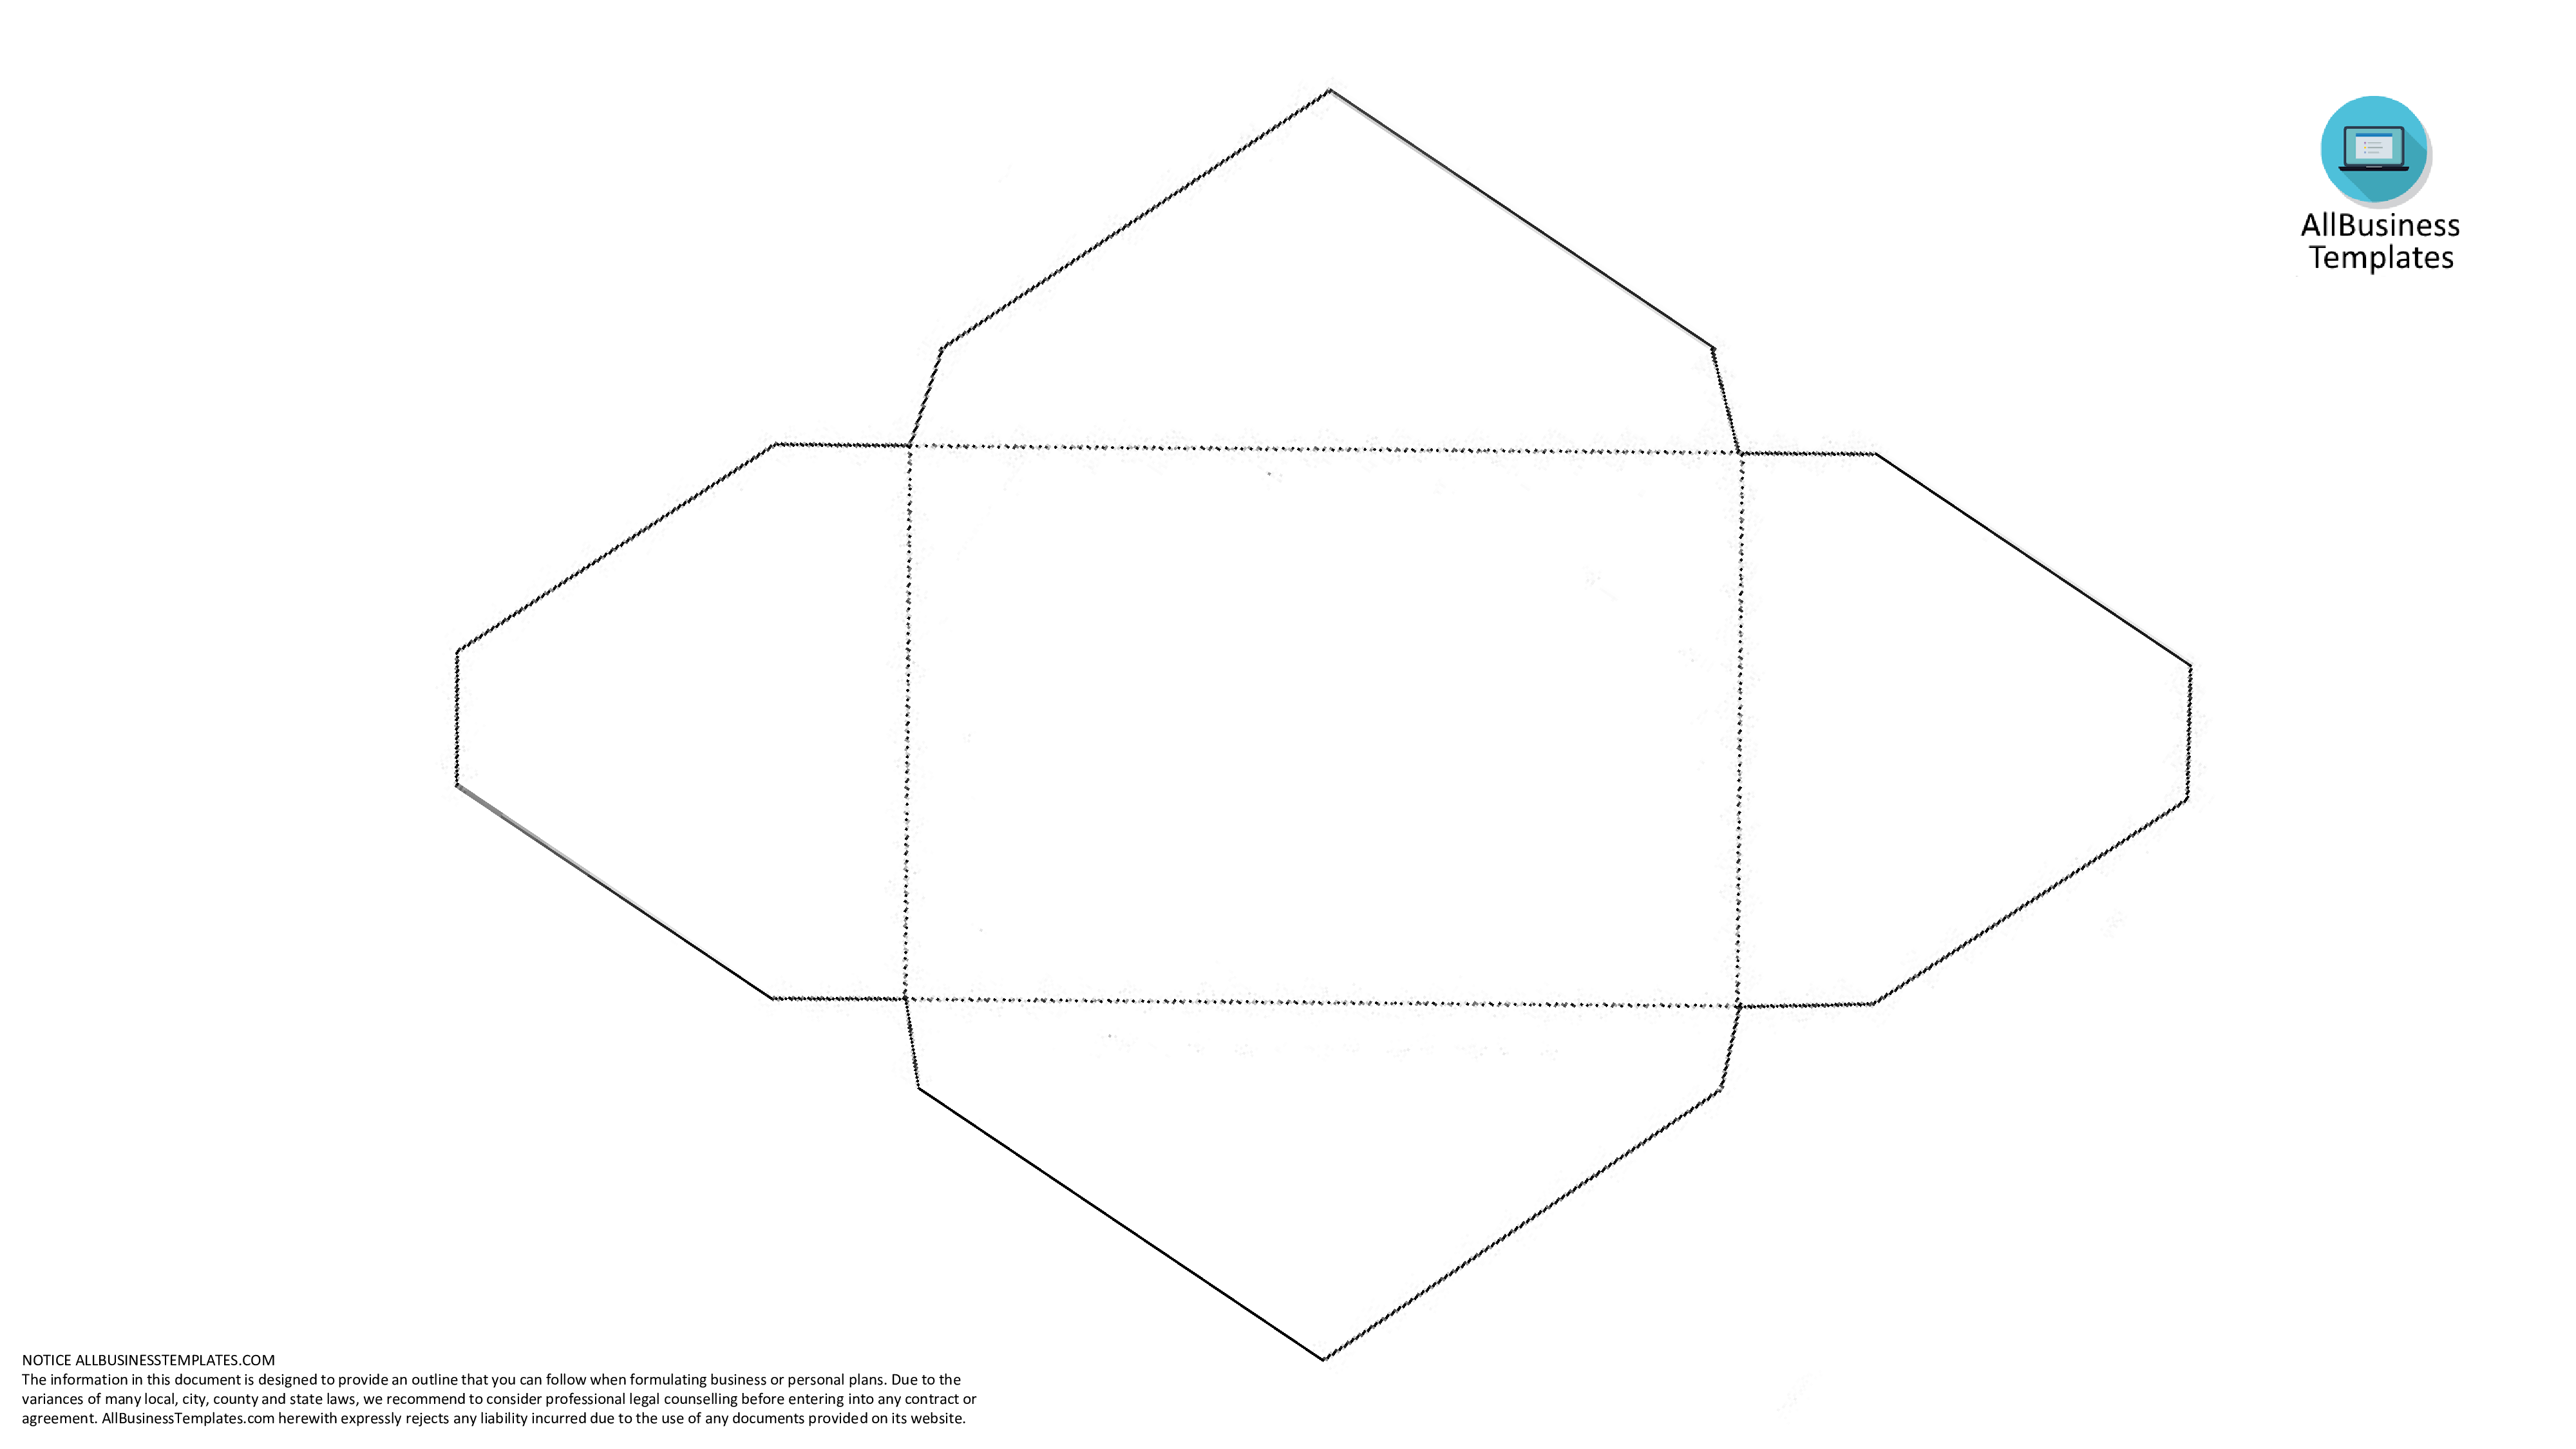 Blank Envelope Template Download This Free Printable White Envelope Template If You Wan Envelope Template Envelope Printing Template Envelope Design Template